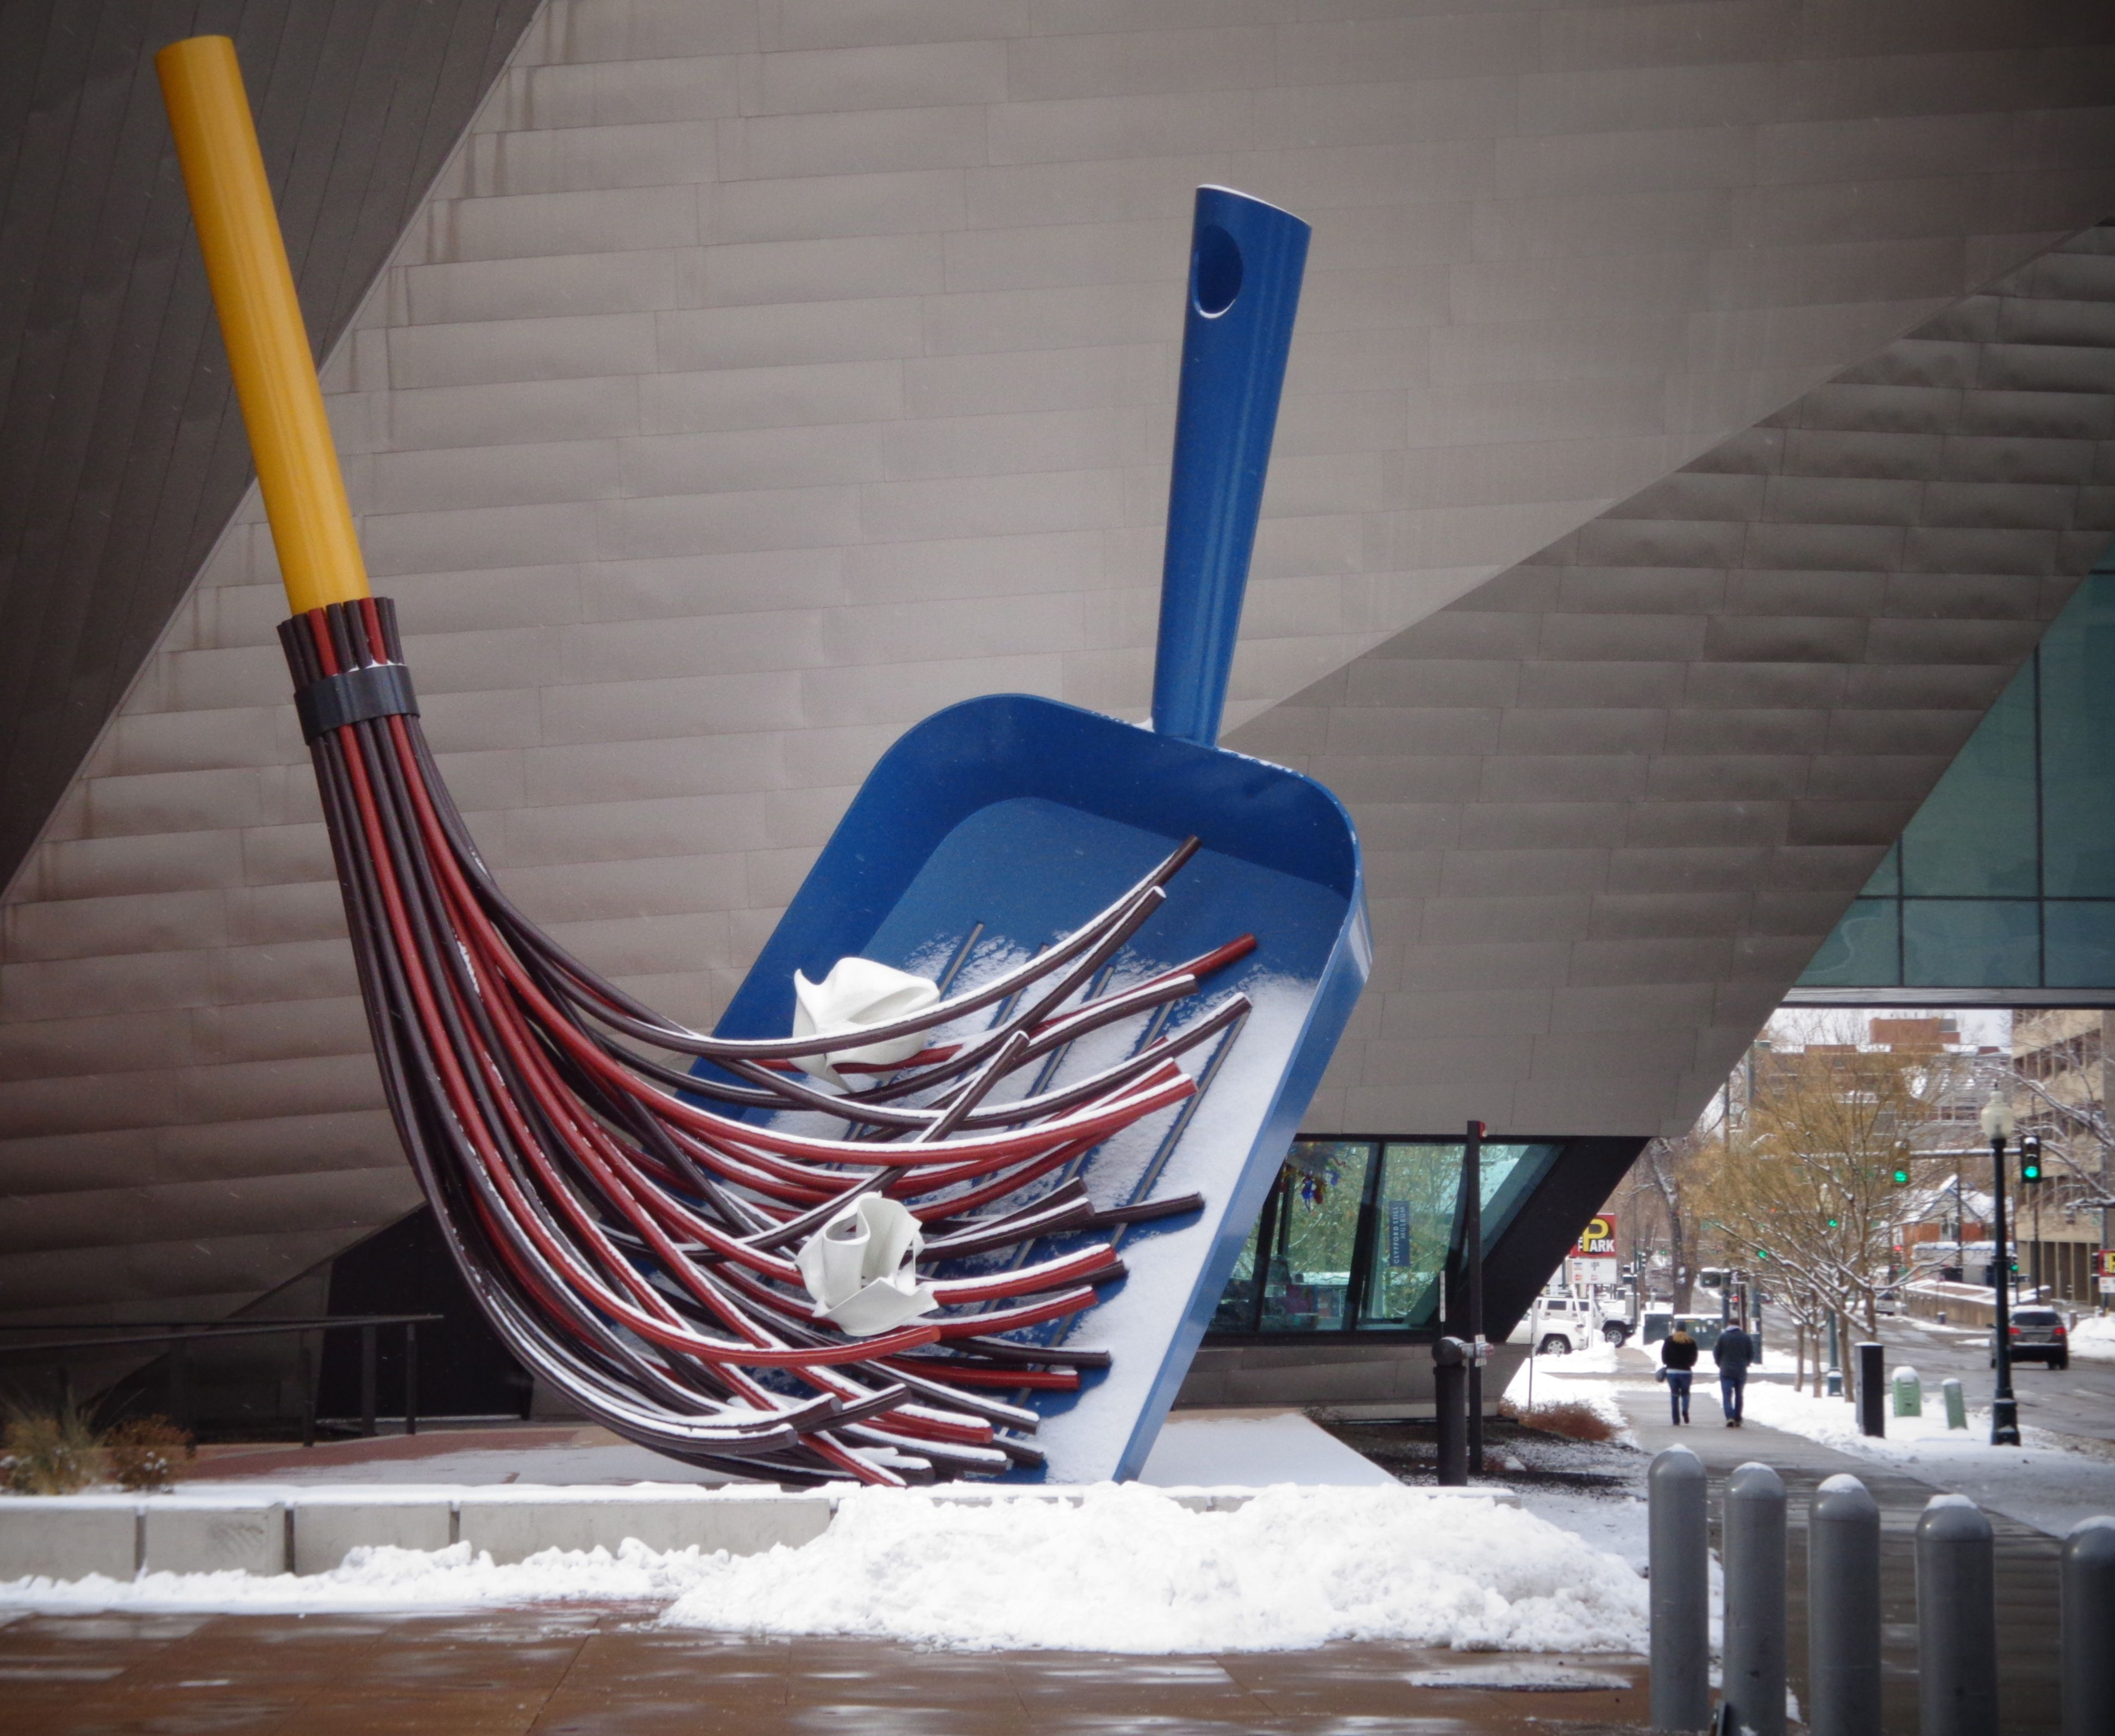 Sweeping up the snow, Denver Art Museum.